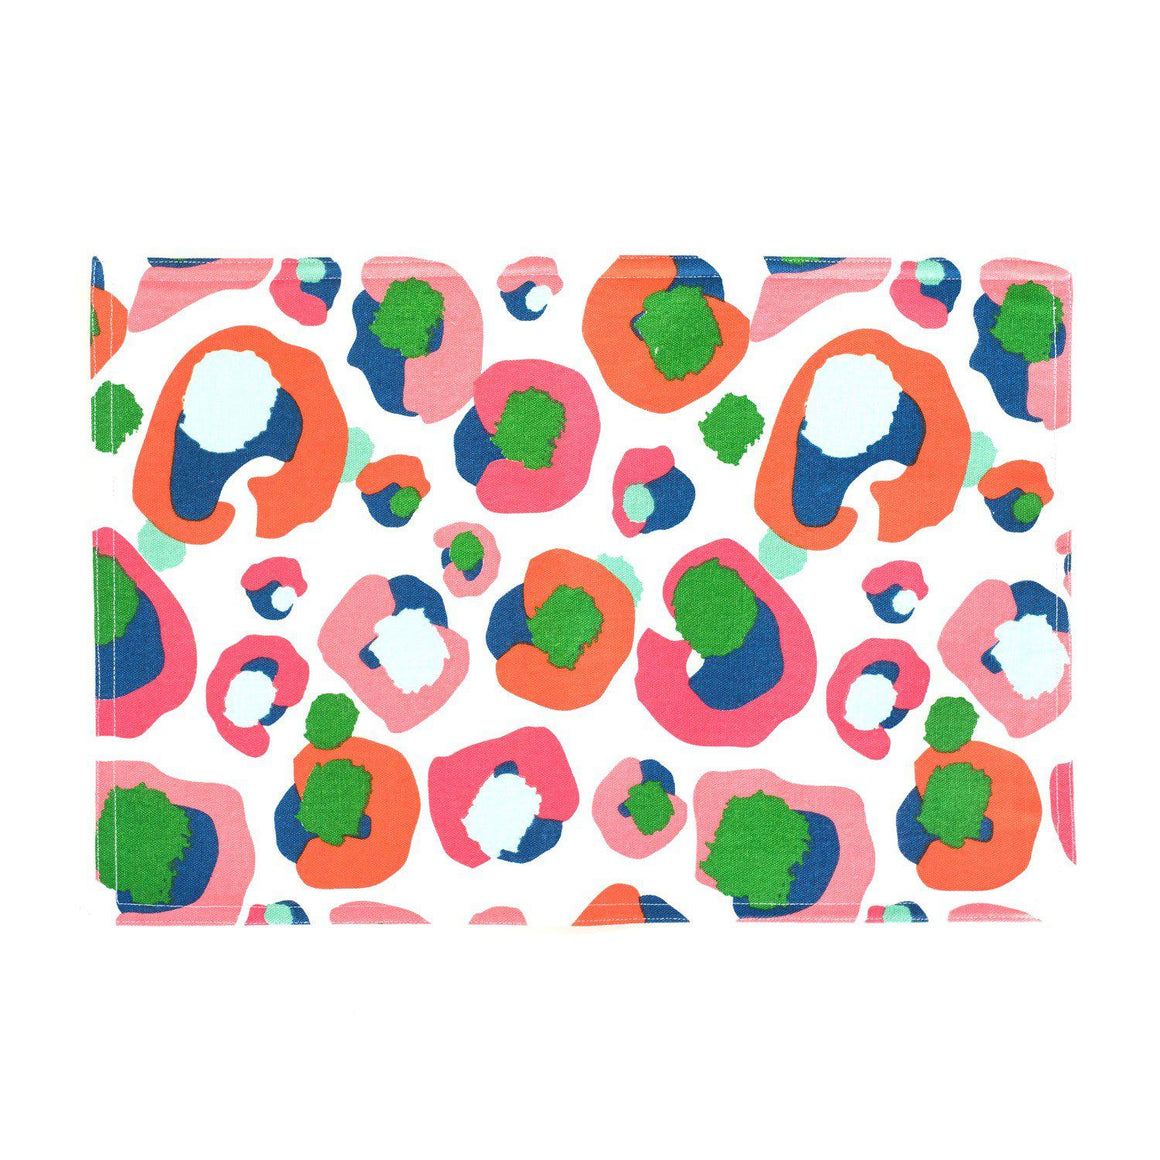 Multi Leopard Placemats Set of 4 - The Preppy Bunny